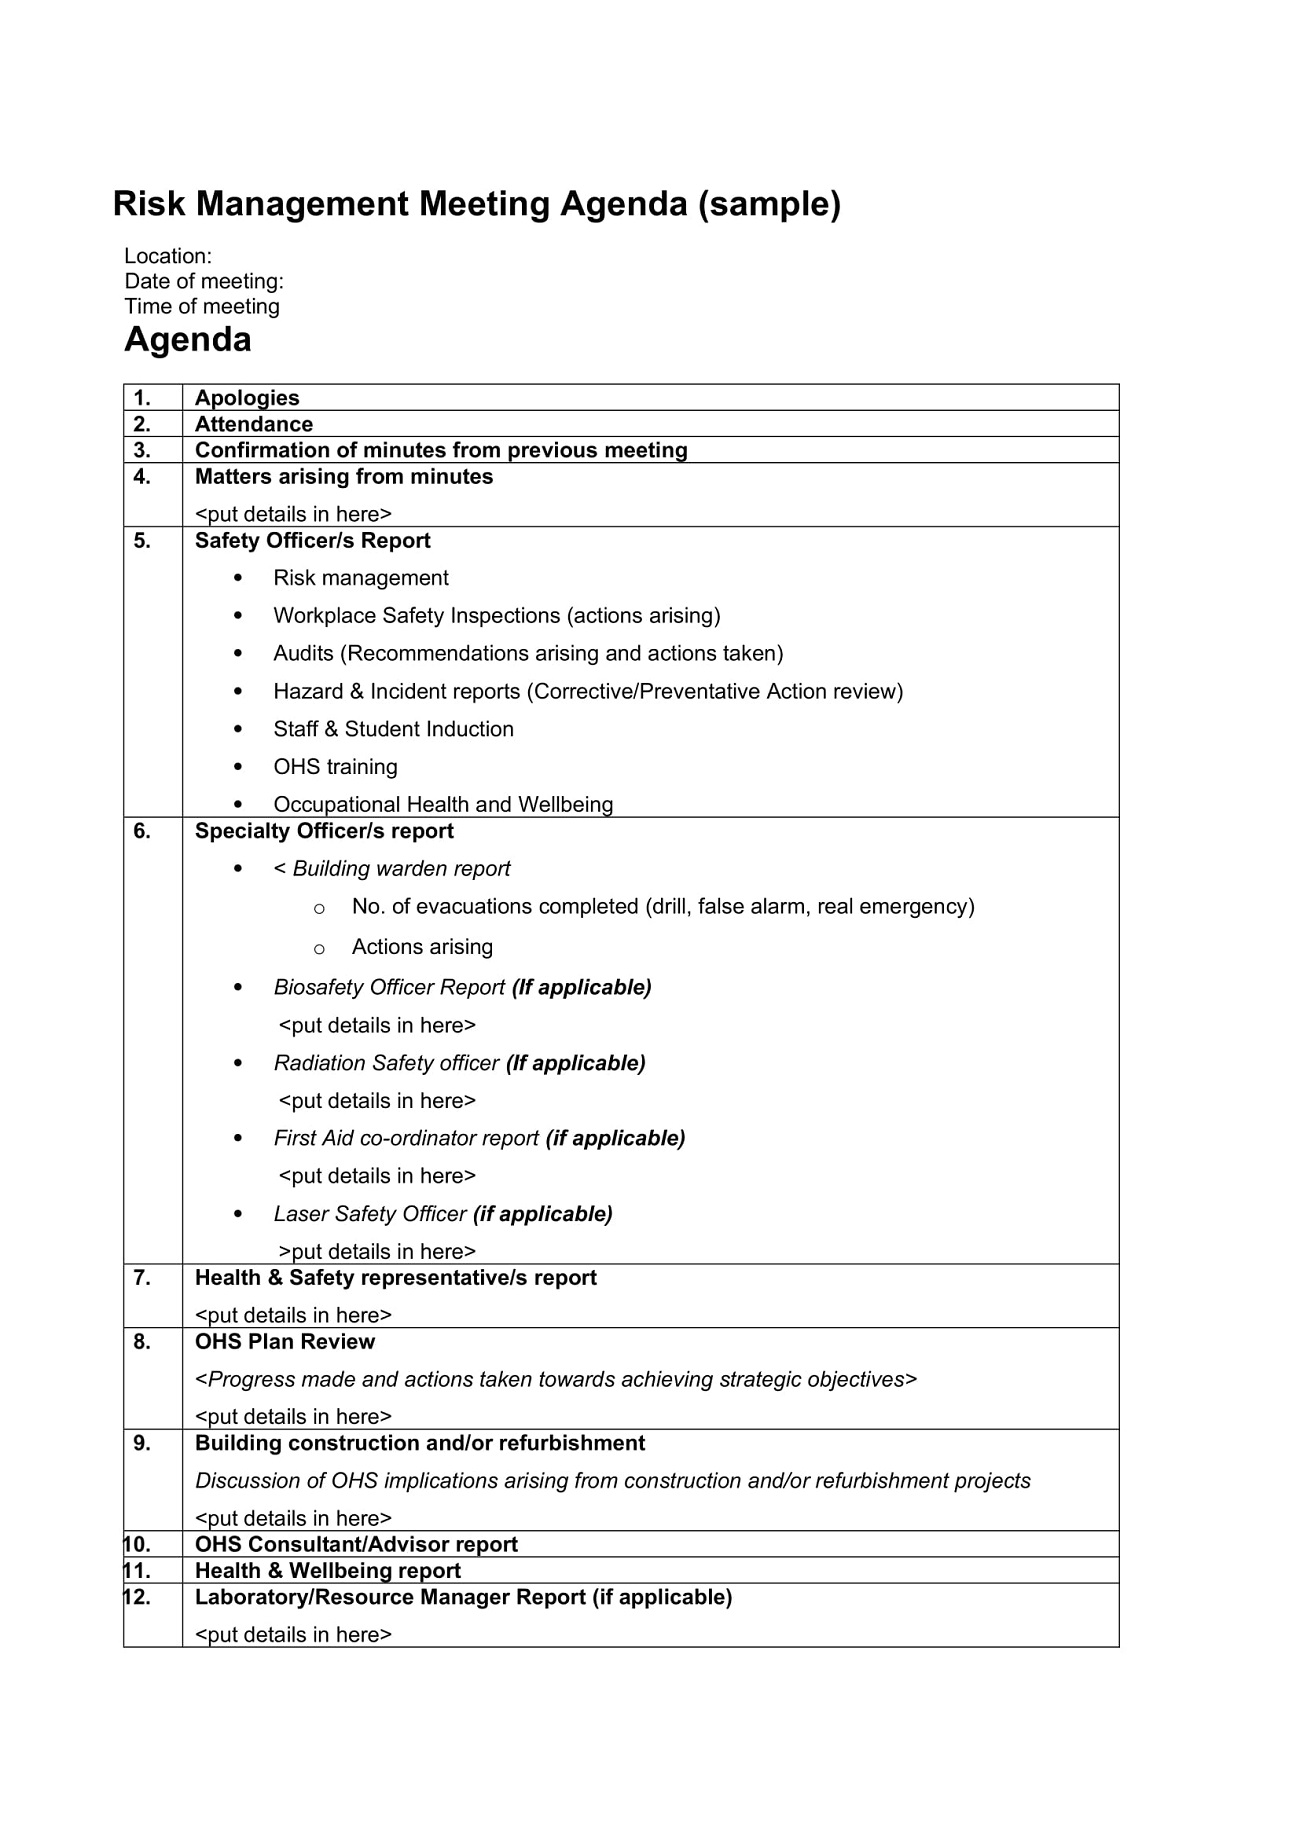 Risk Management Meeting Agenda Sample Template Word Monthly Topics Case  Example Full